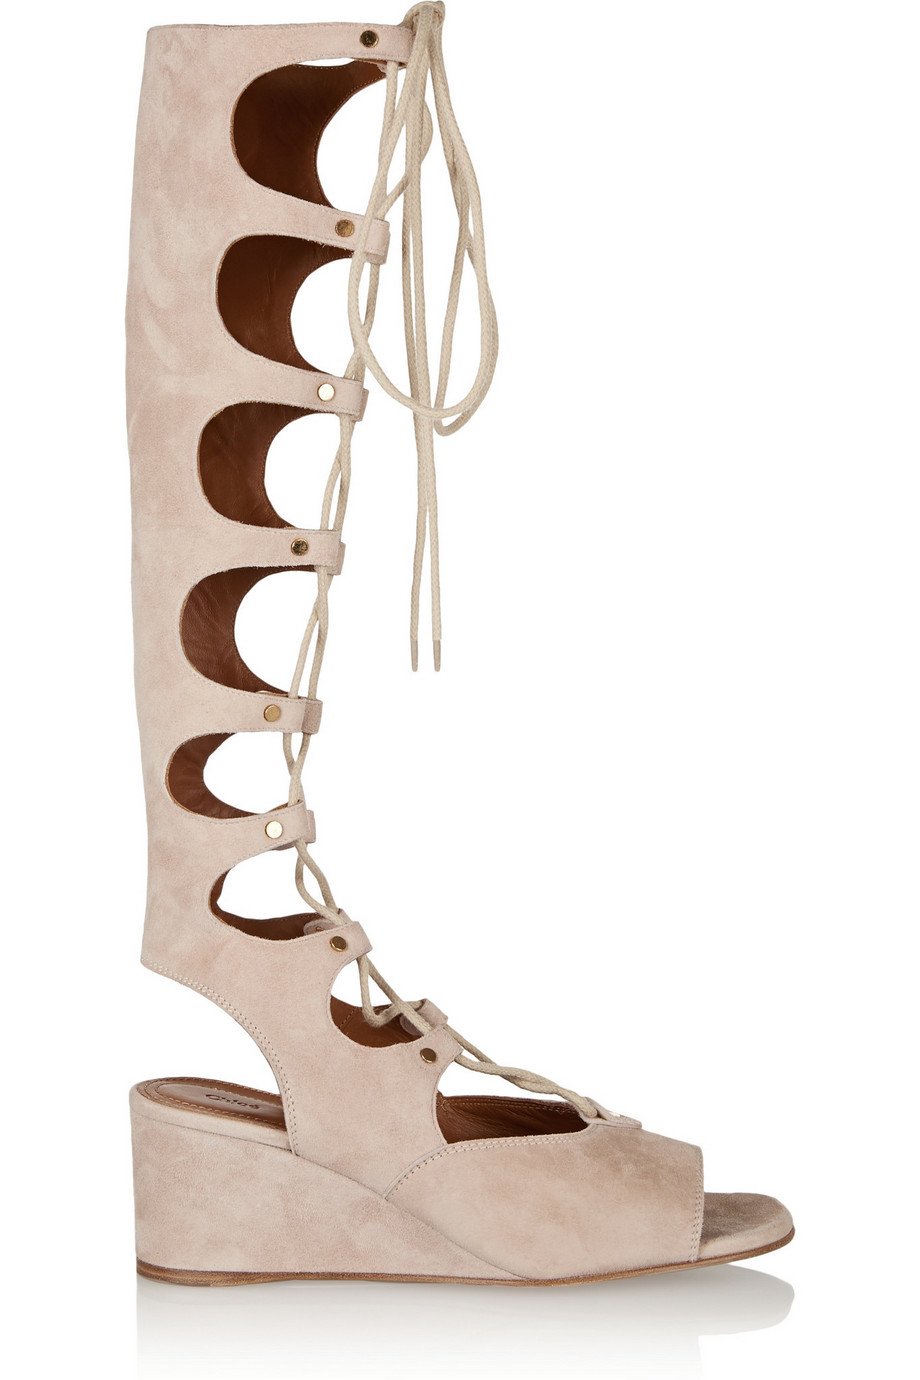 Chloé Lace-Up Suede Wedge Sandals, Size: 38.5